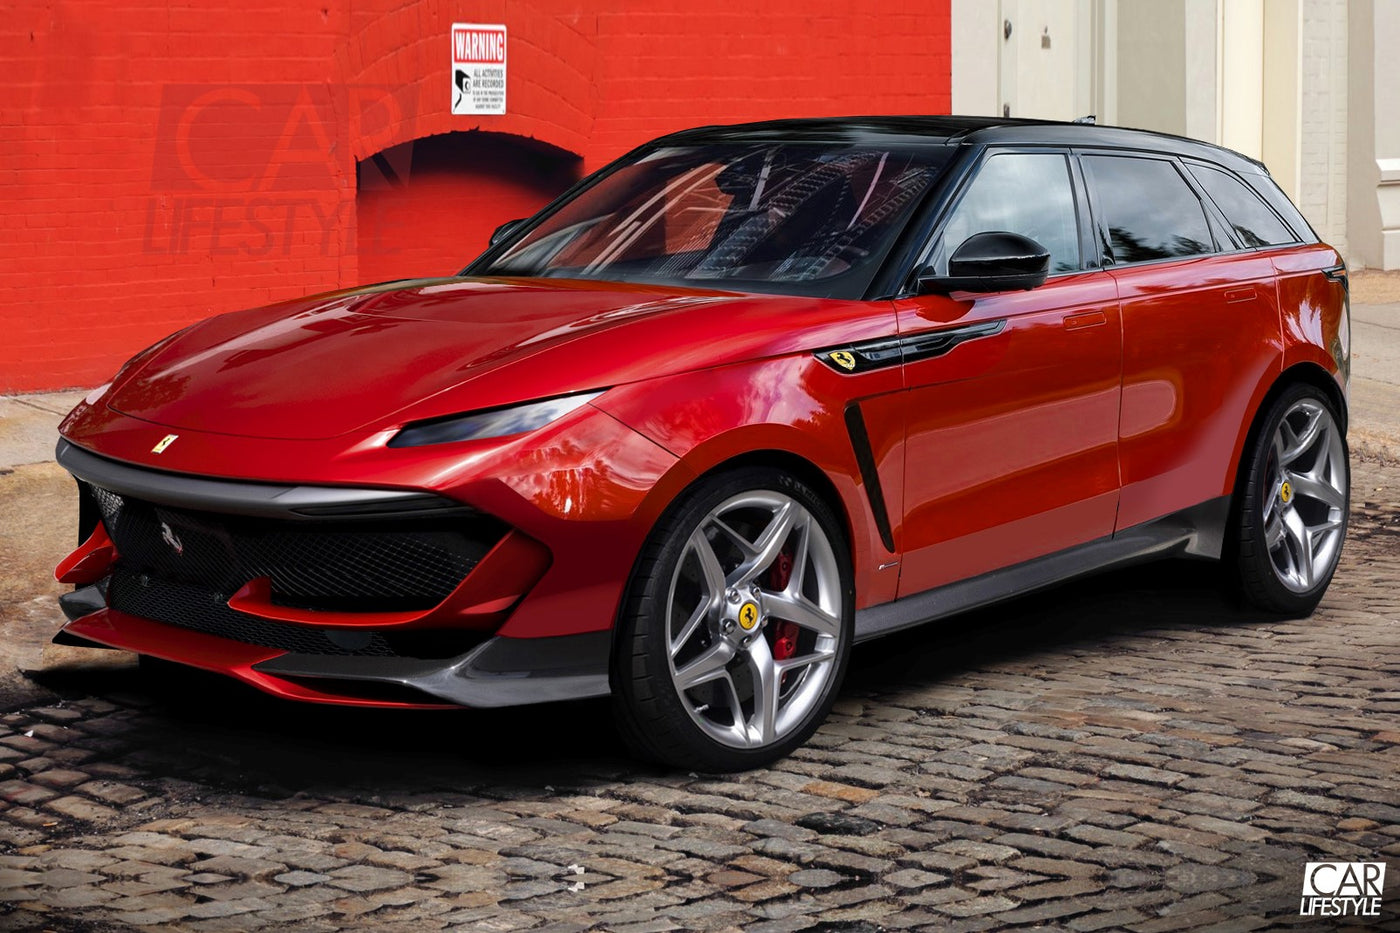 Why A Ferrari SUV Is A Great Idea